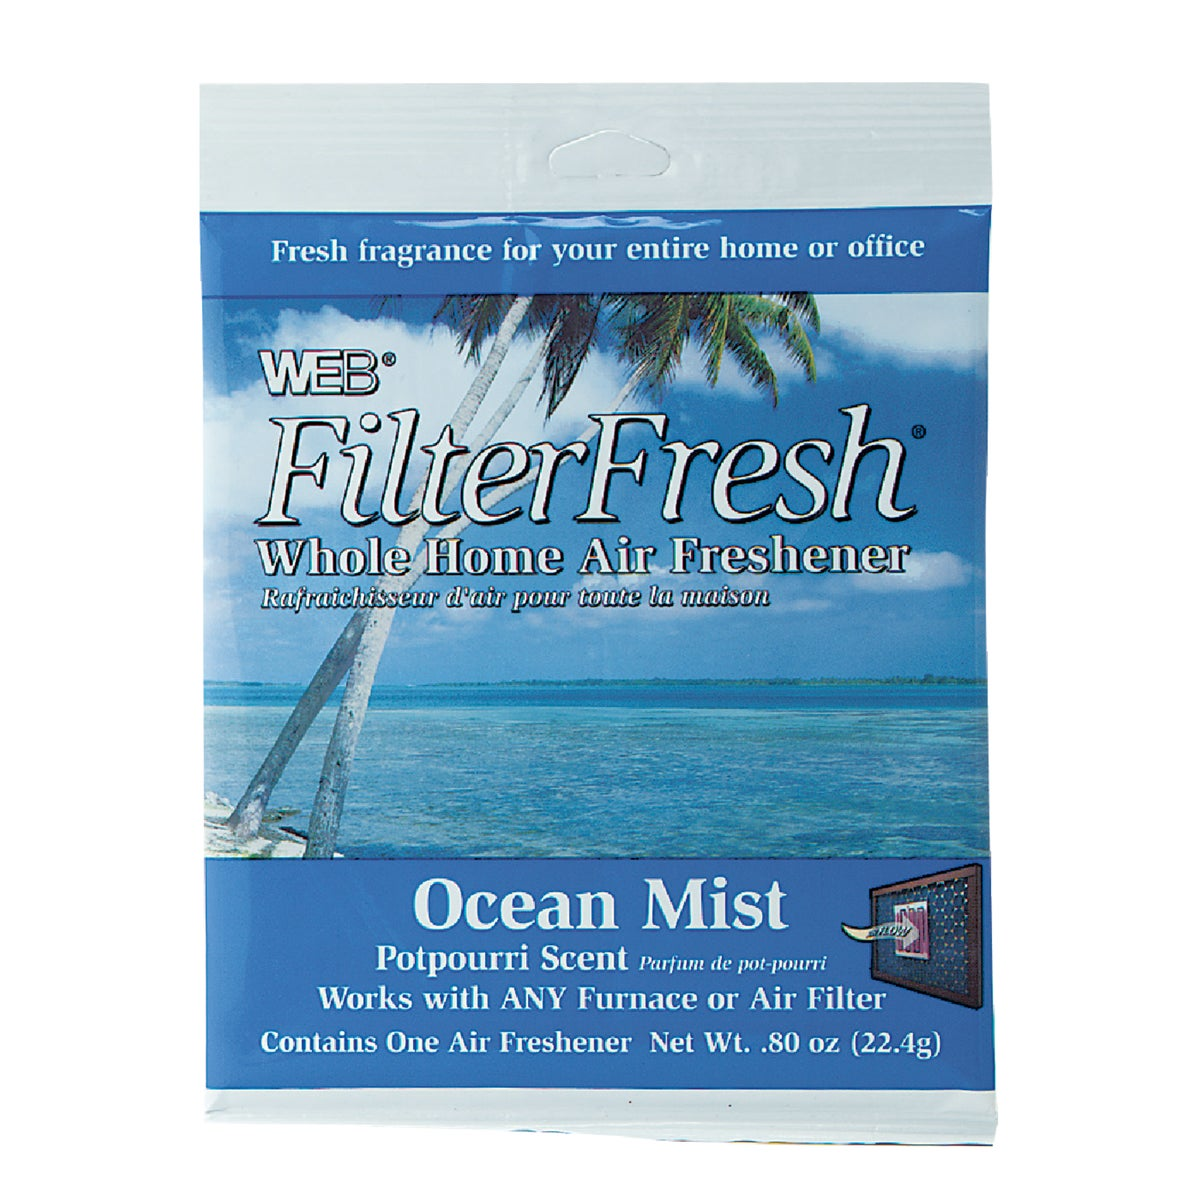 OCEAN FLTR AIR FRESHENER - WOCEAN by Web Products Inc